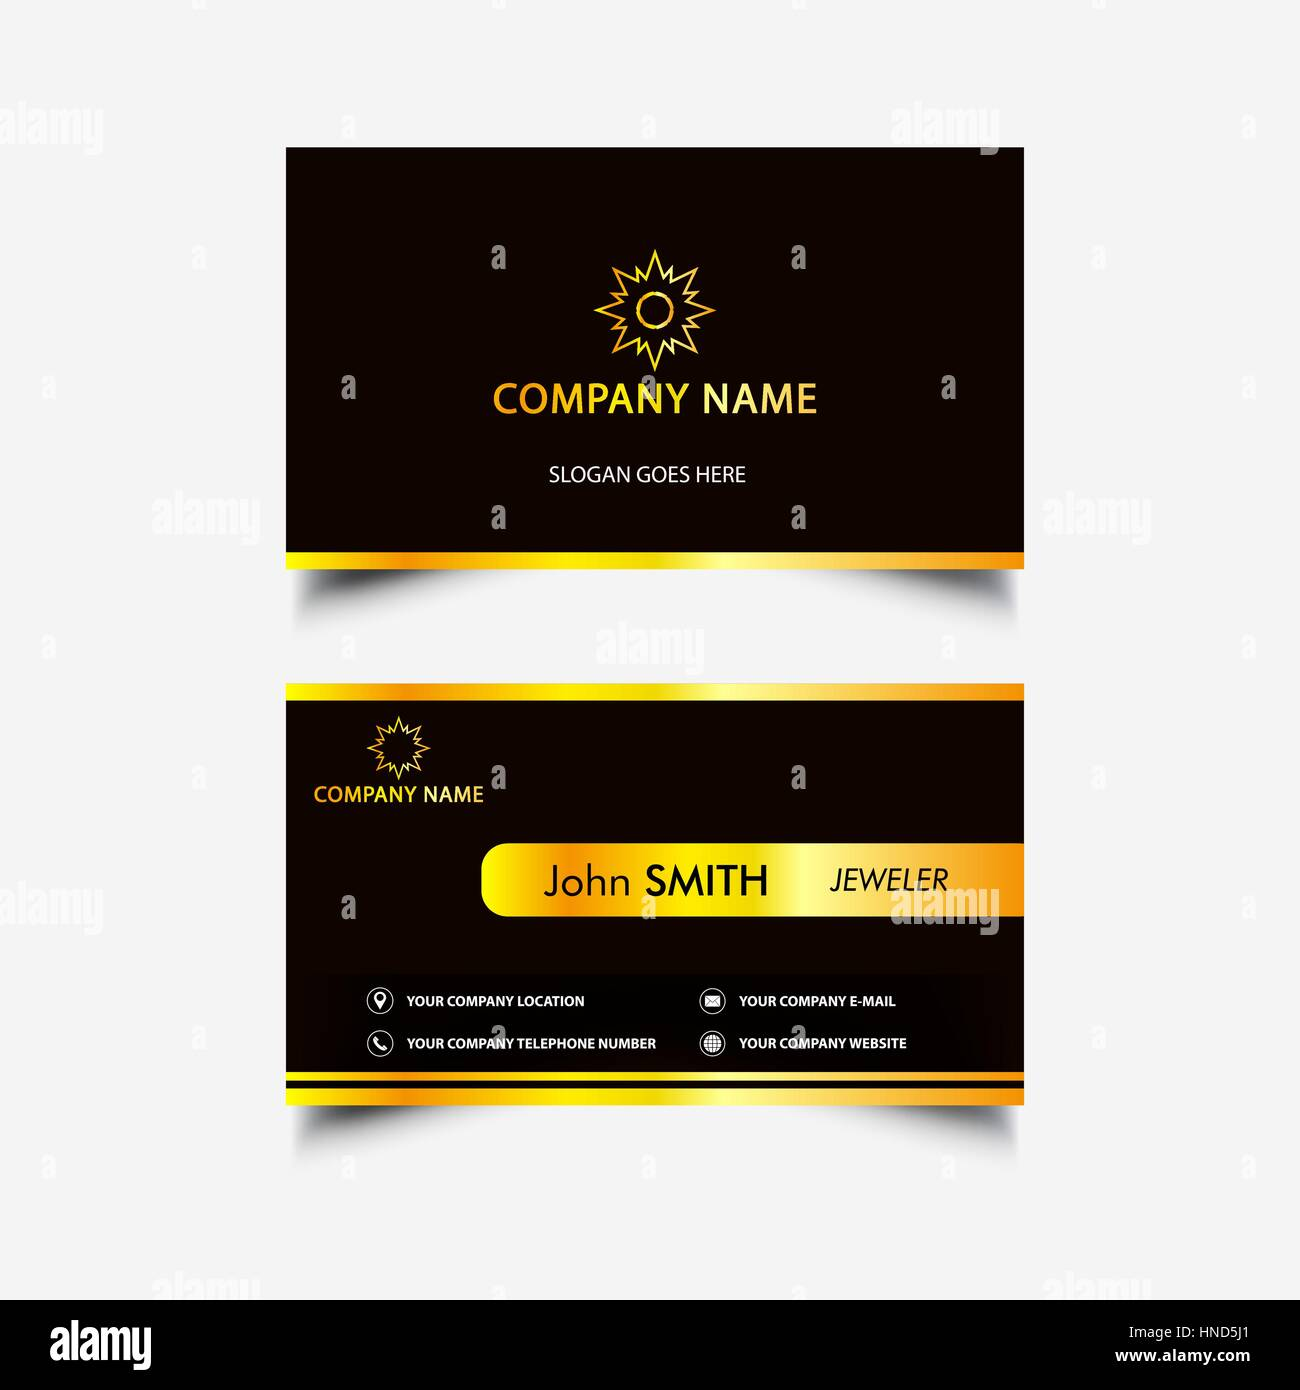 Golden Luxury Business Card - Stock Image